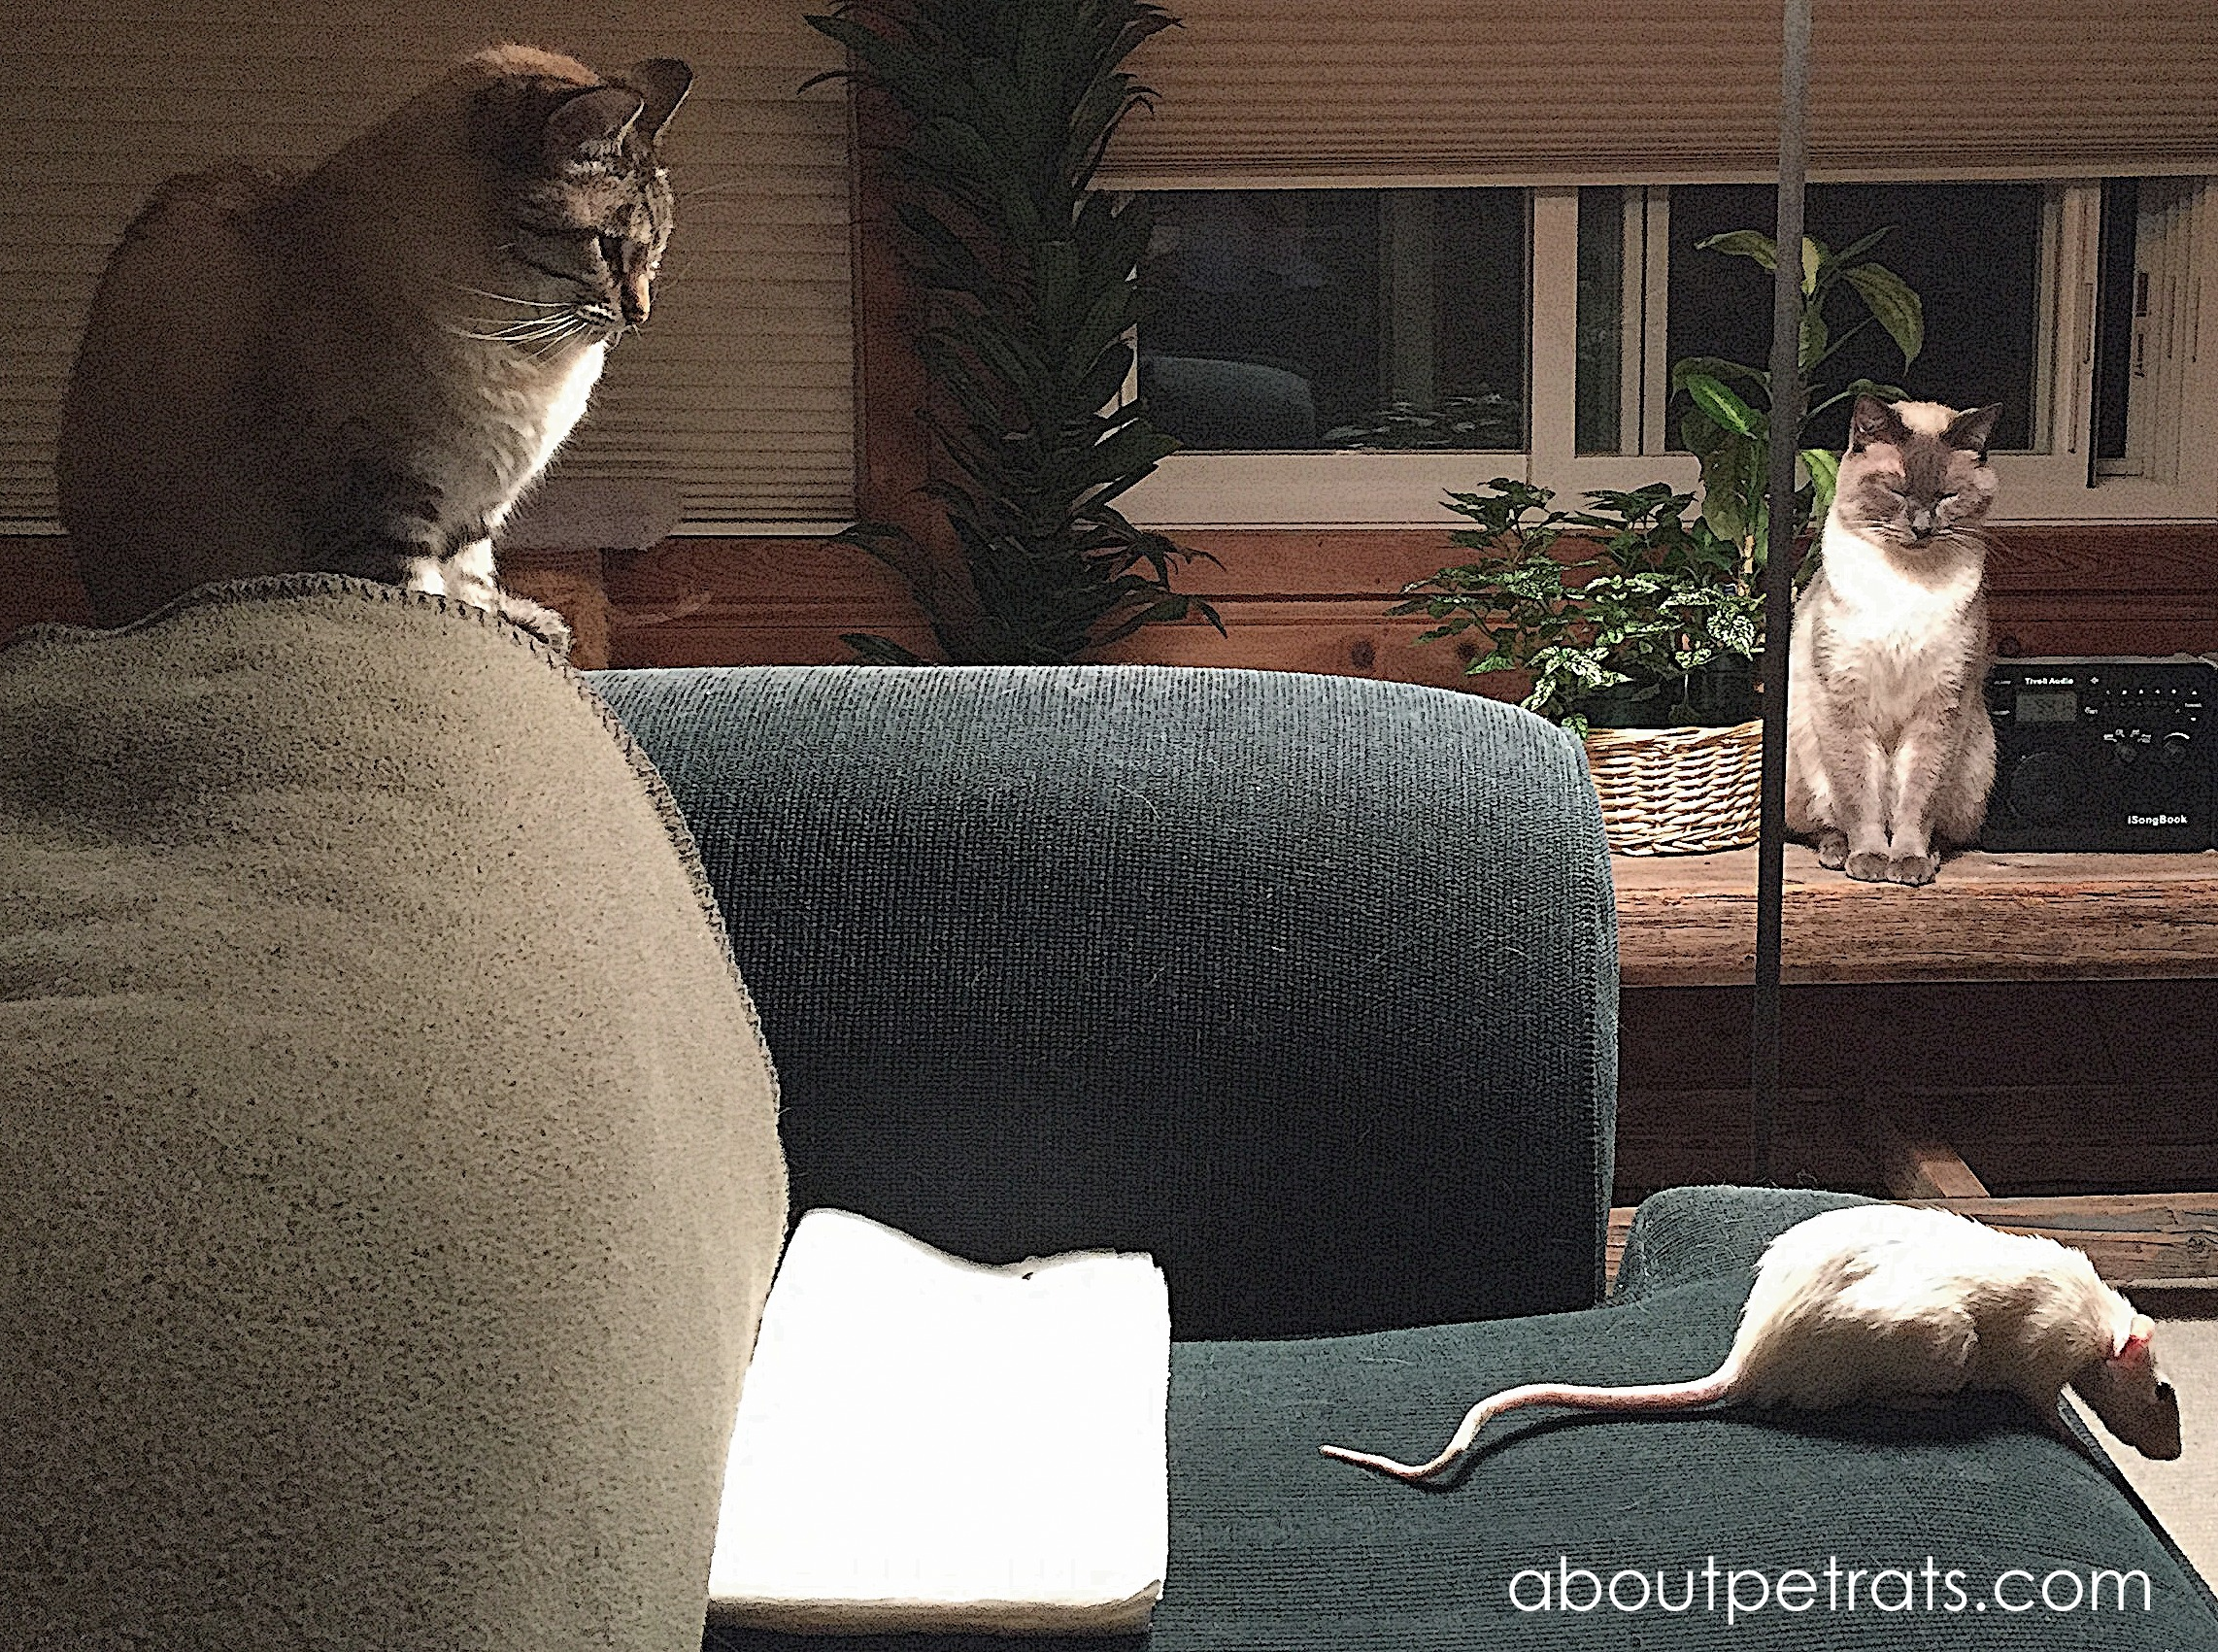 Cats and Rats - I'd never leave them alone together but, when supervised, they learn to tolerate one another